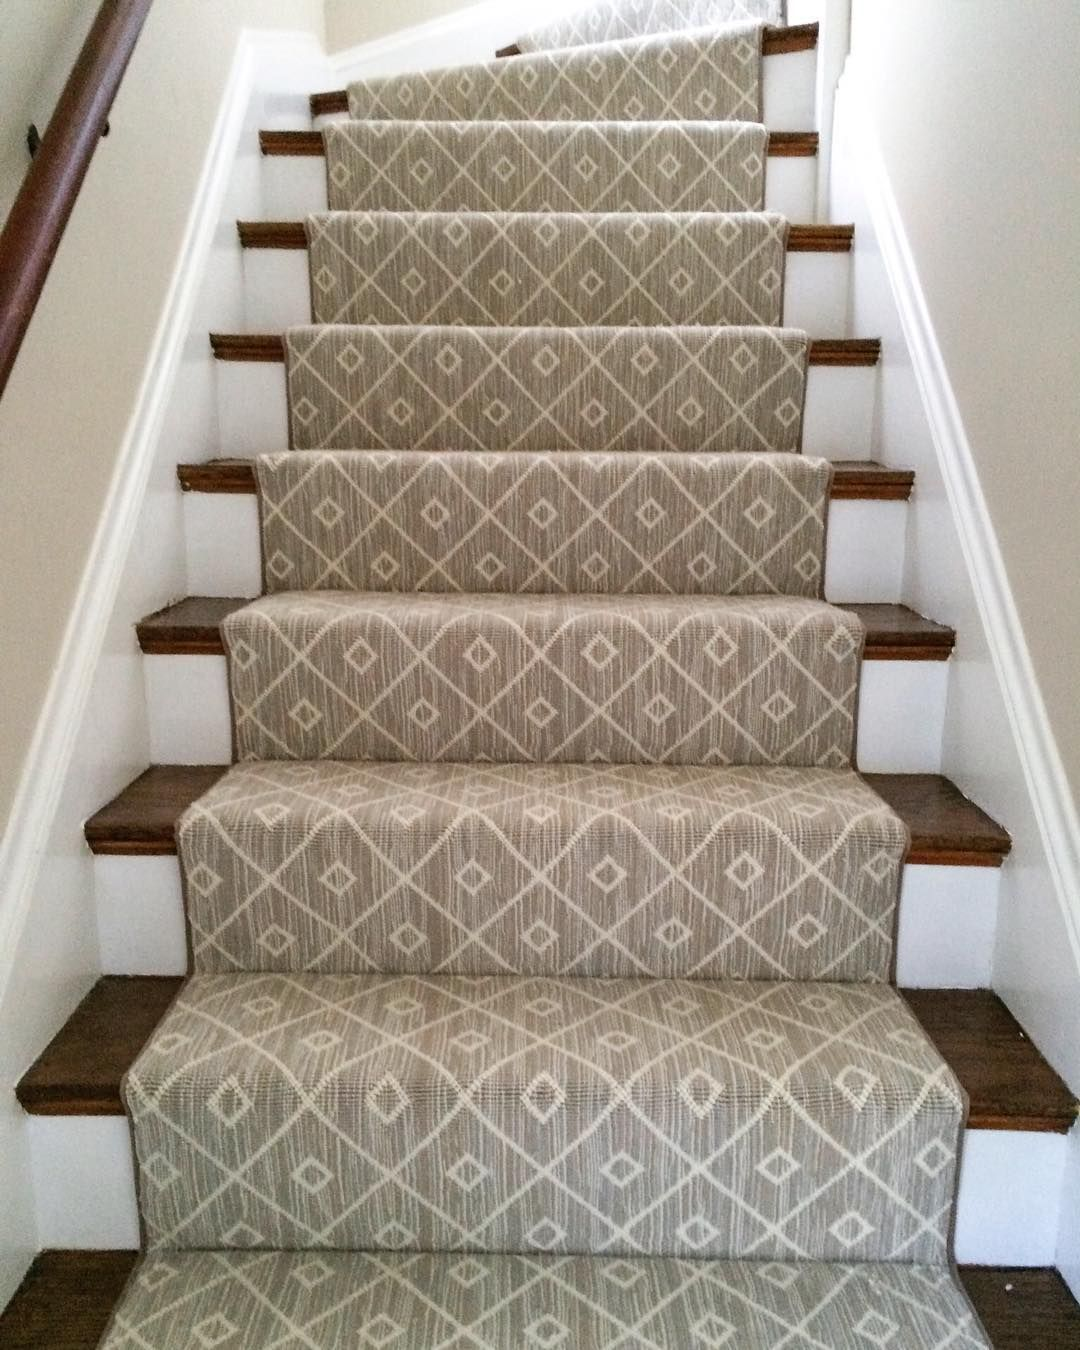 Mia A Woven 100 Wool Carpet Makes For A Beautiful Stair Runner Installation By Thecarpetworkroom Carp